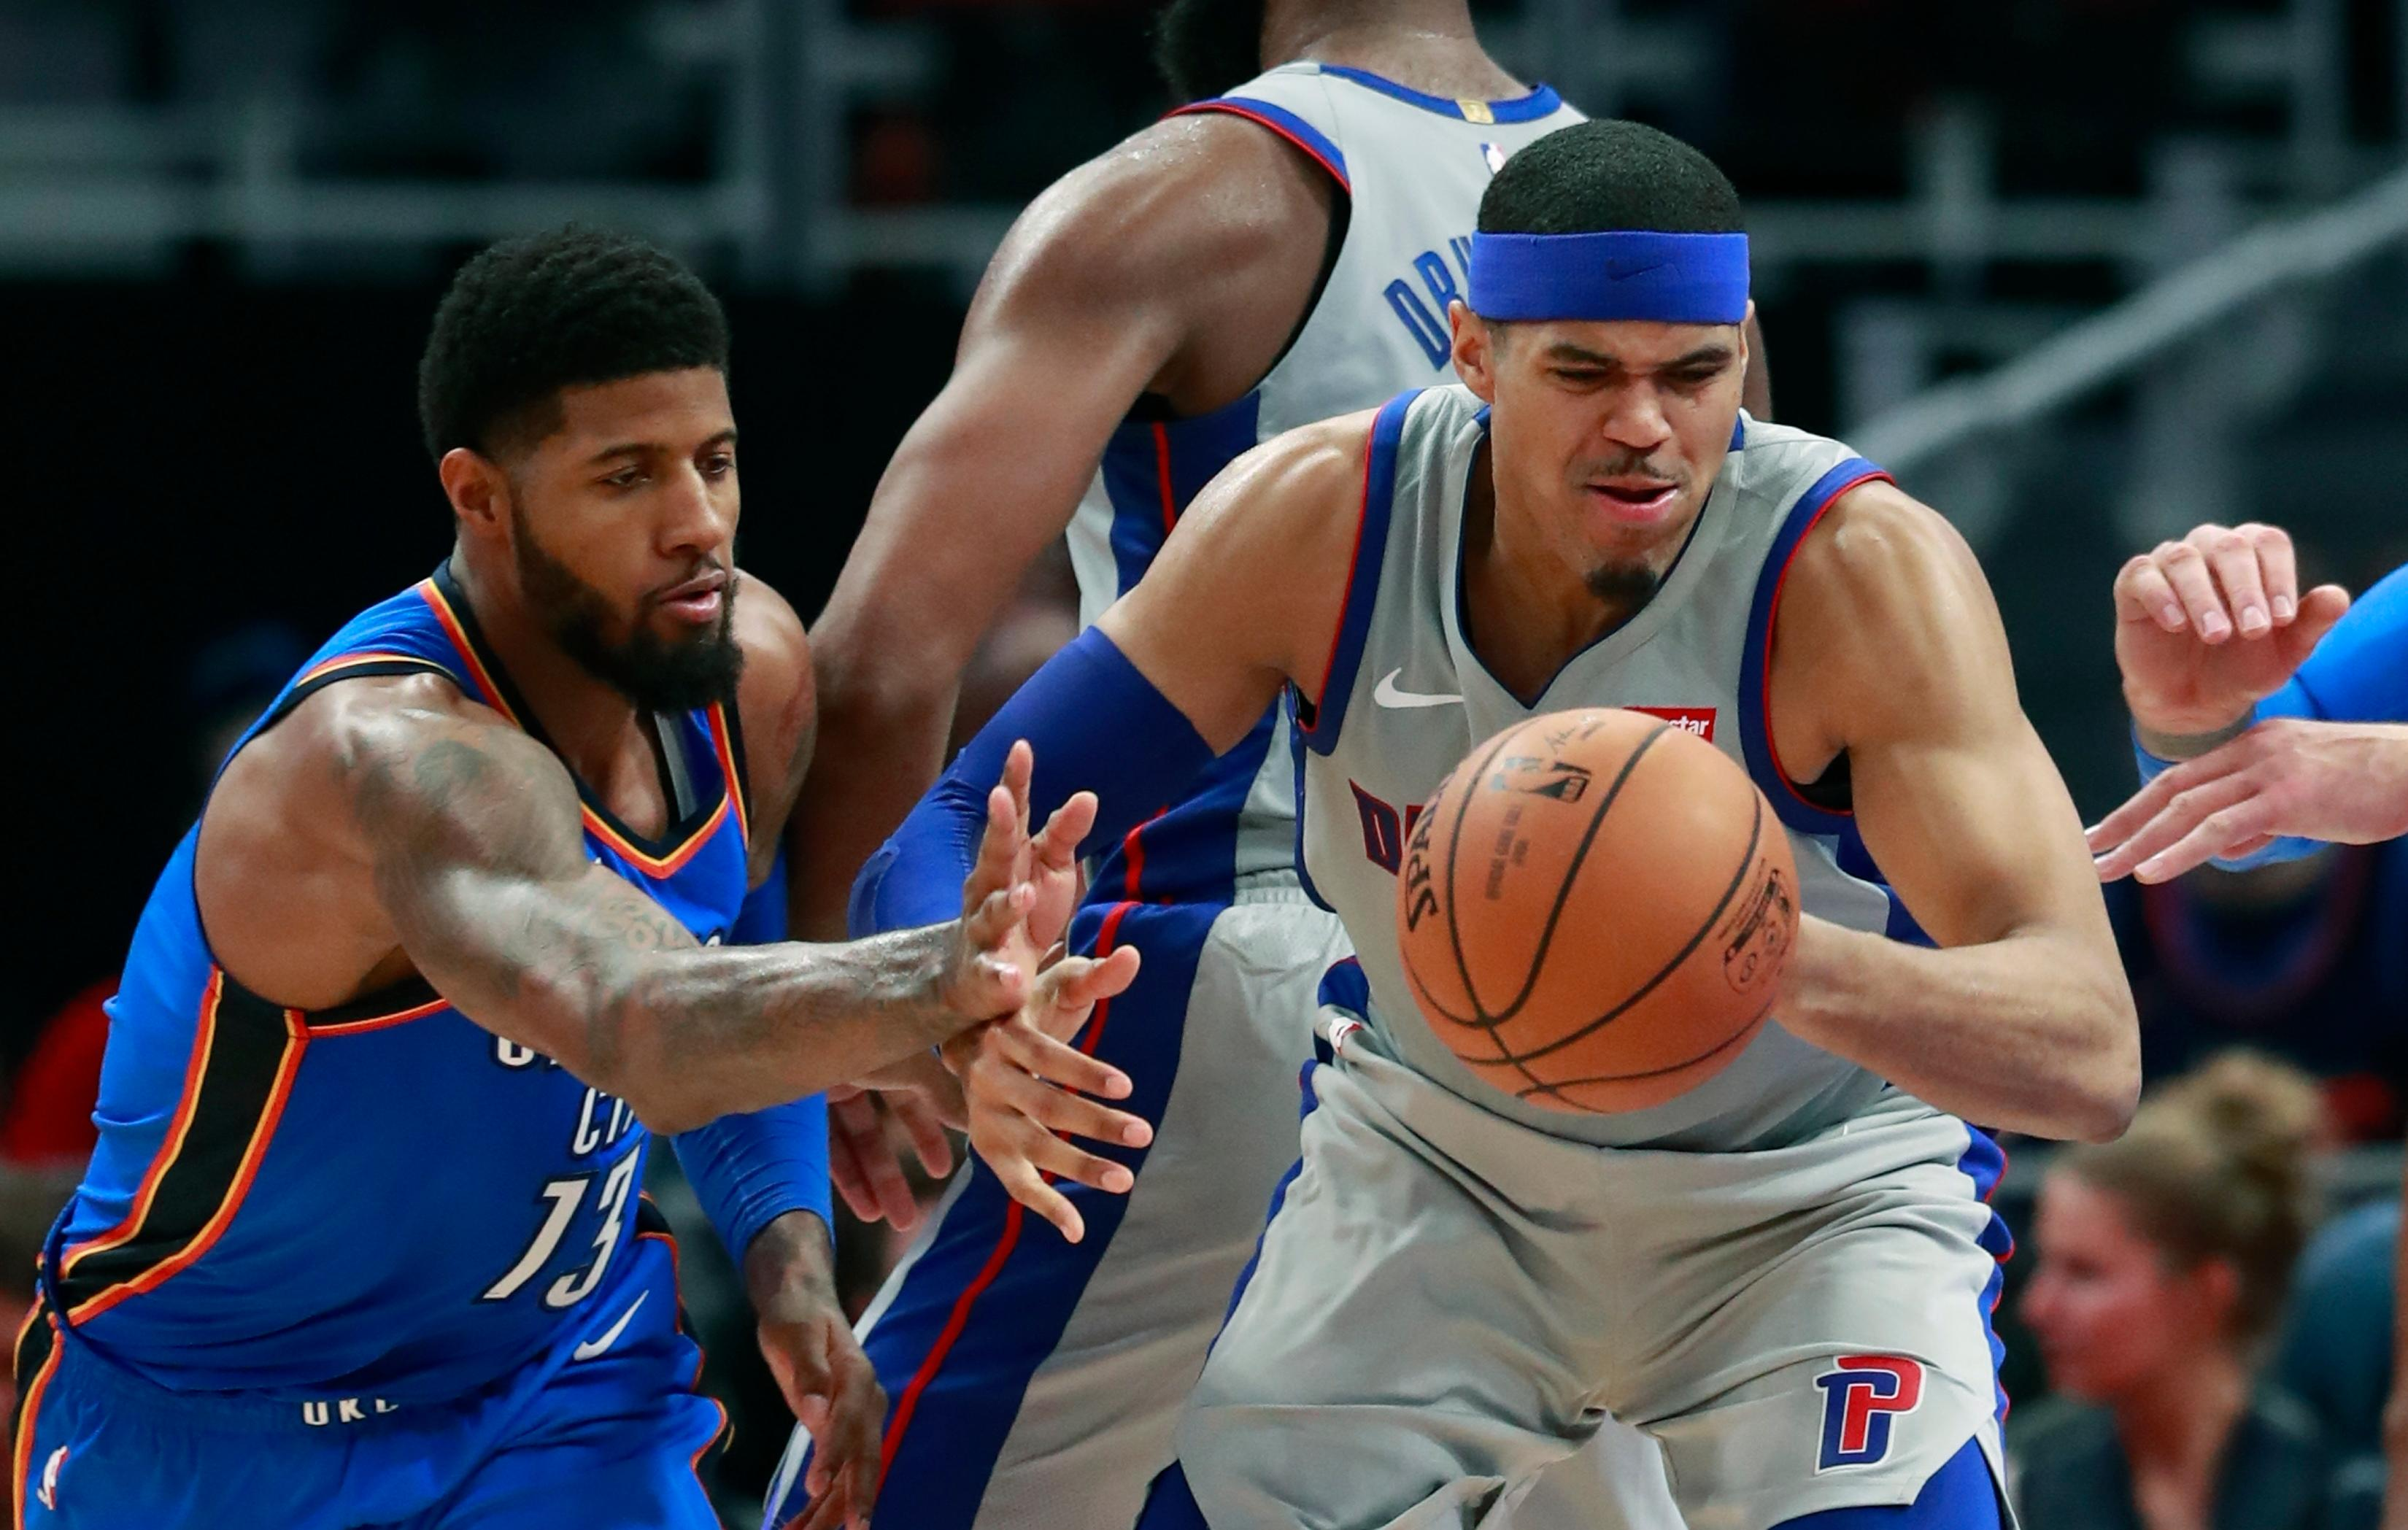 Oklahoma City Thunder forward Paul George (13) knocks the ball away from Detroit Pistons forward Tobias Harris during the second half of an NBA basketball game Saturday, Jan. 27, 2018, in Detroit. (AP Photo/Carlos Osorio)